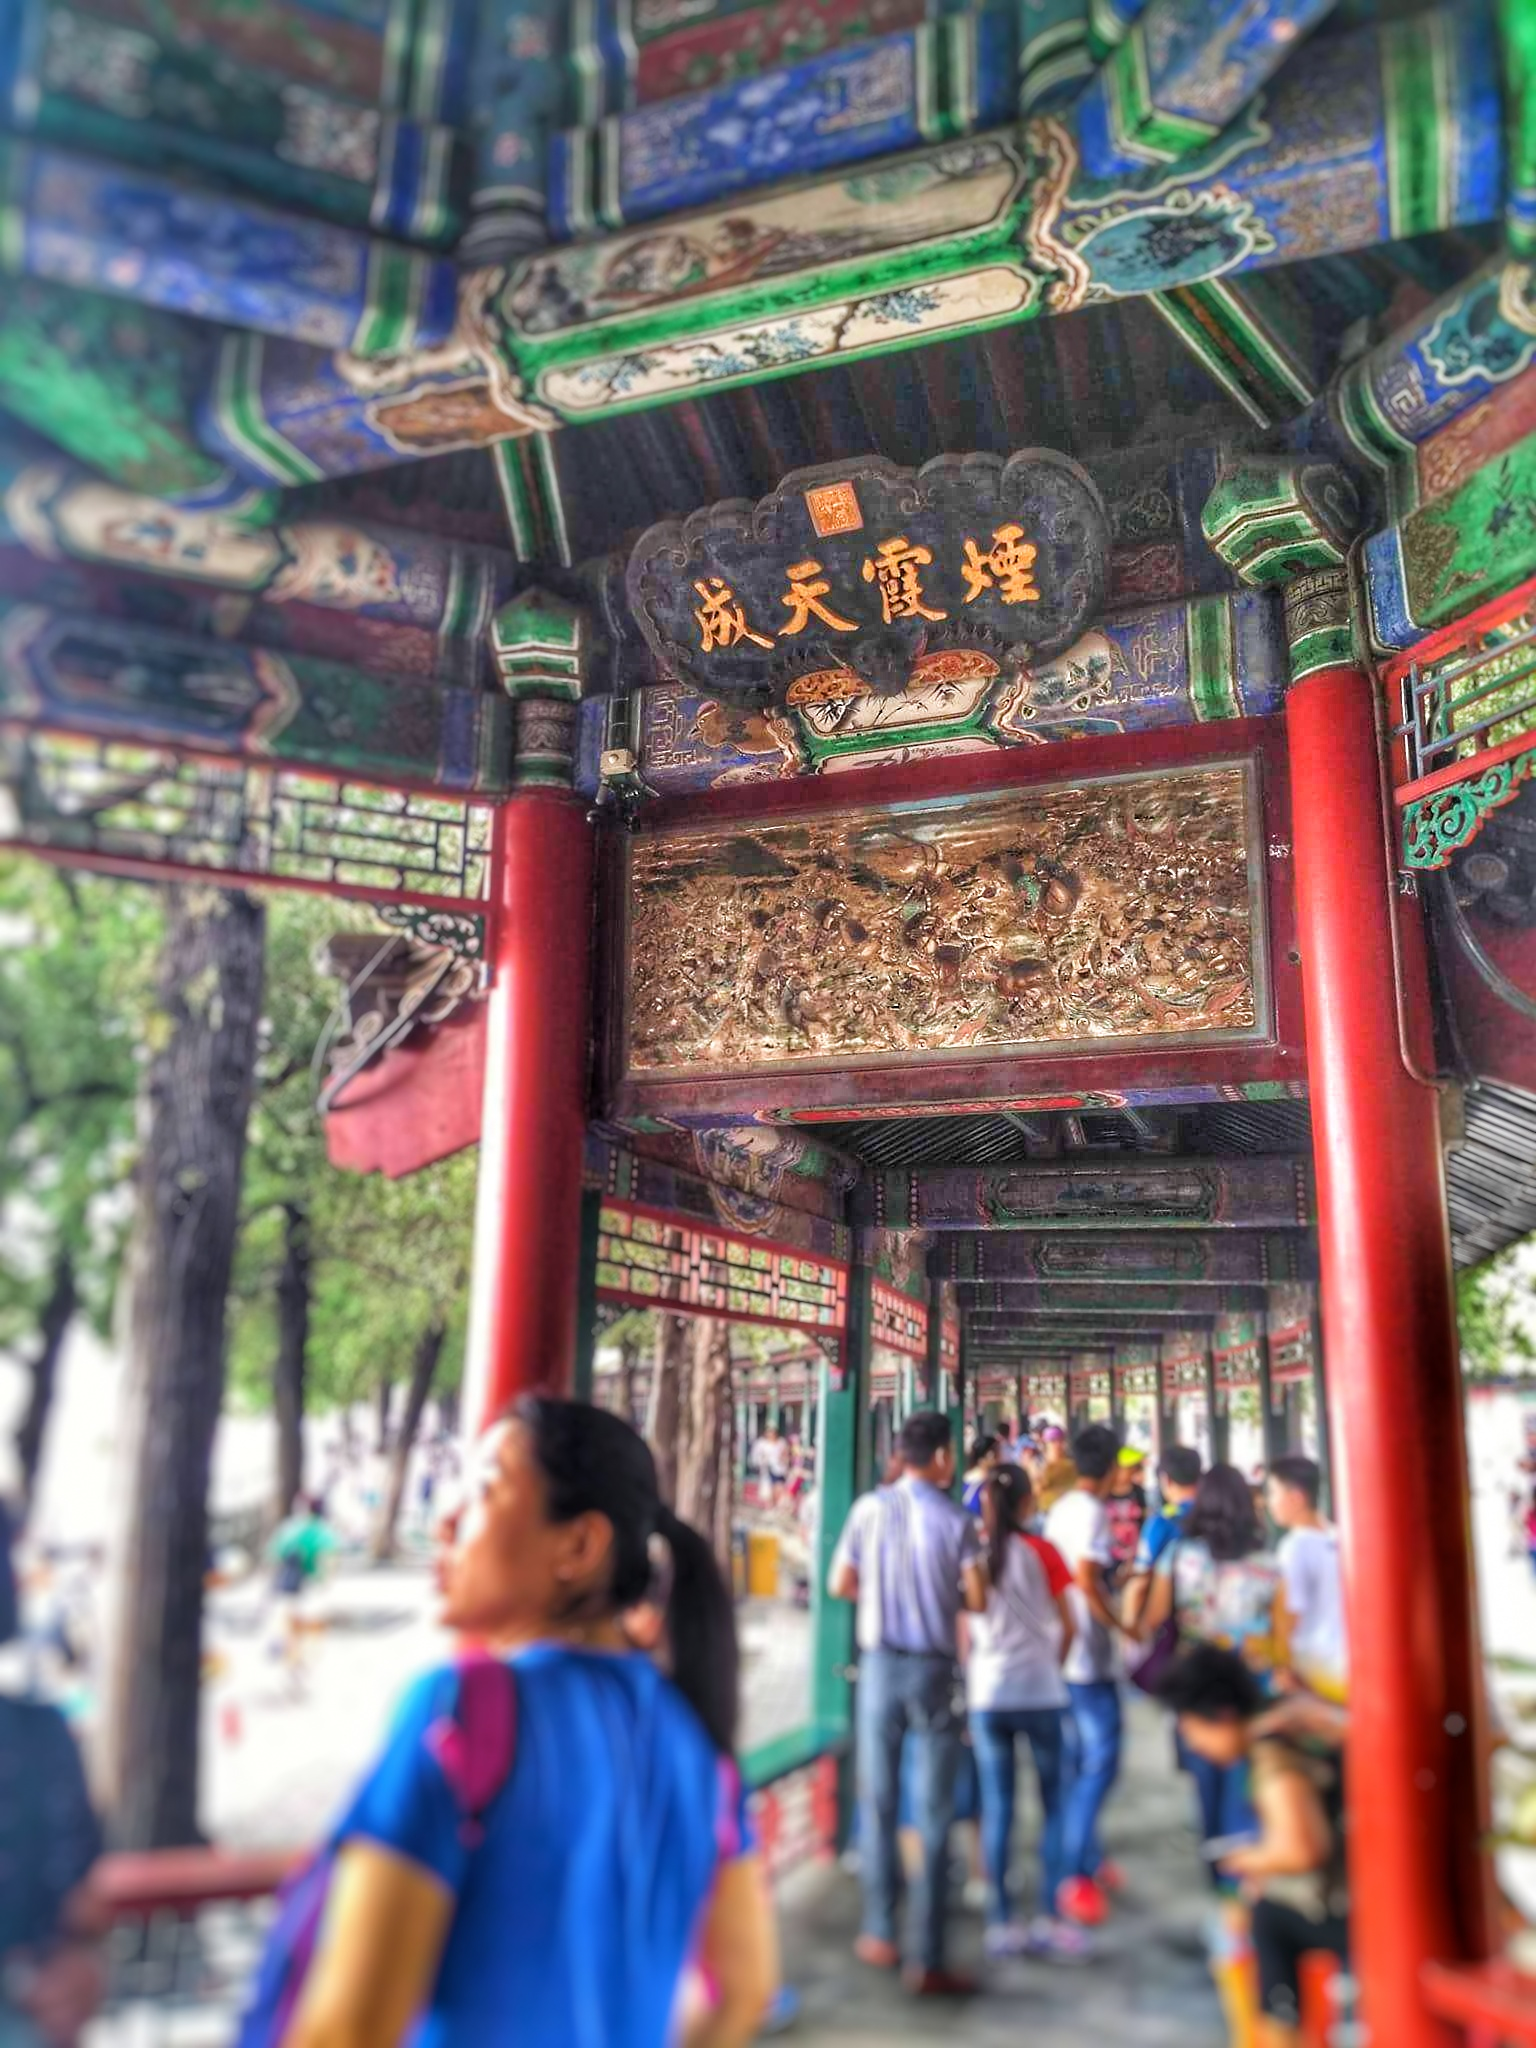 Beijing Top Things To Do - Summer Palace Passageway